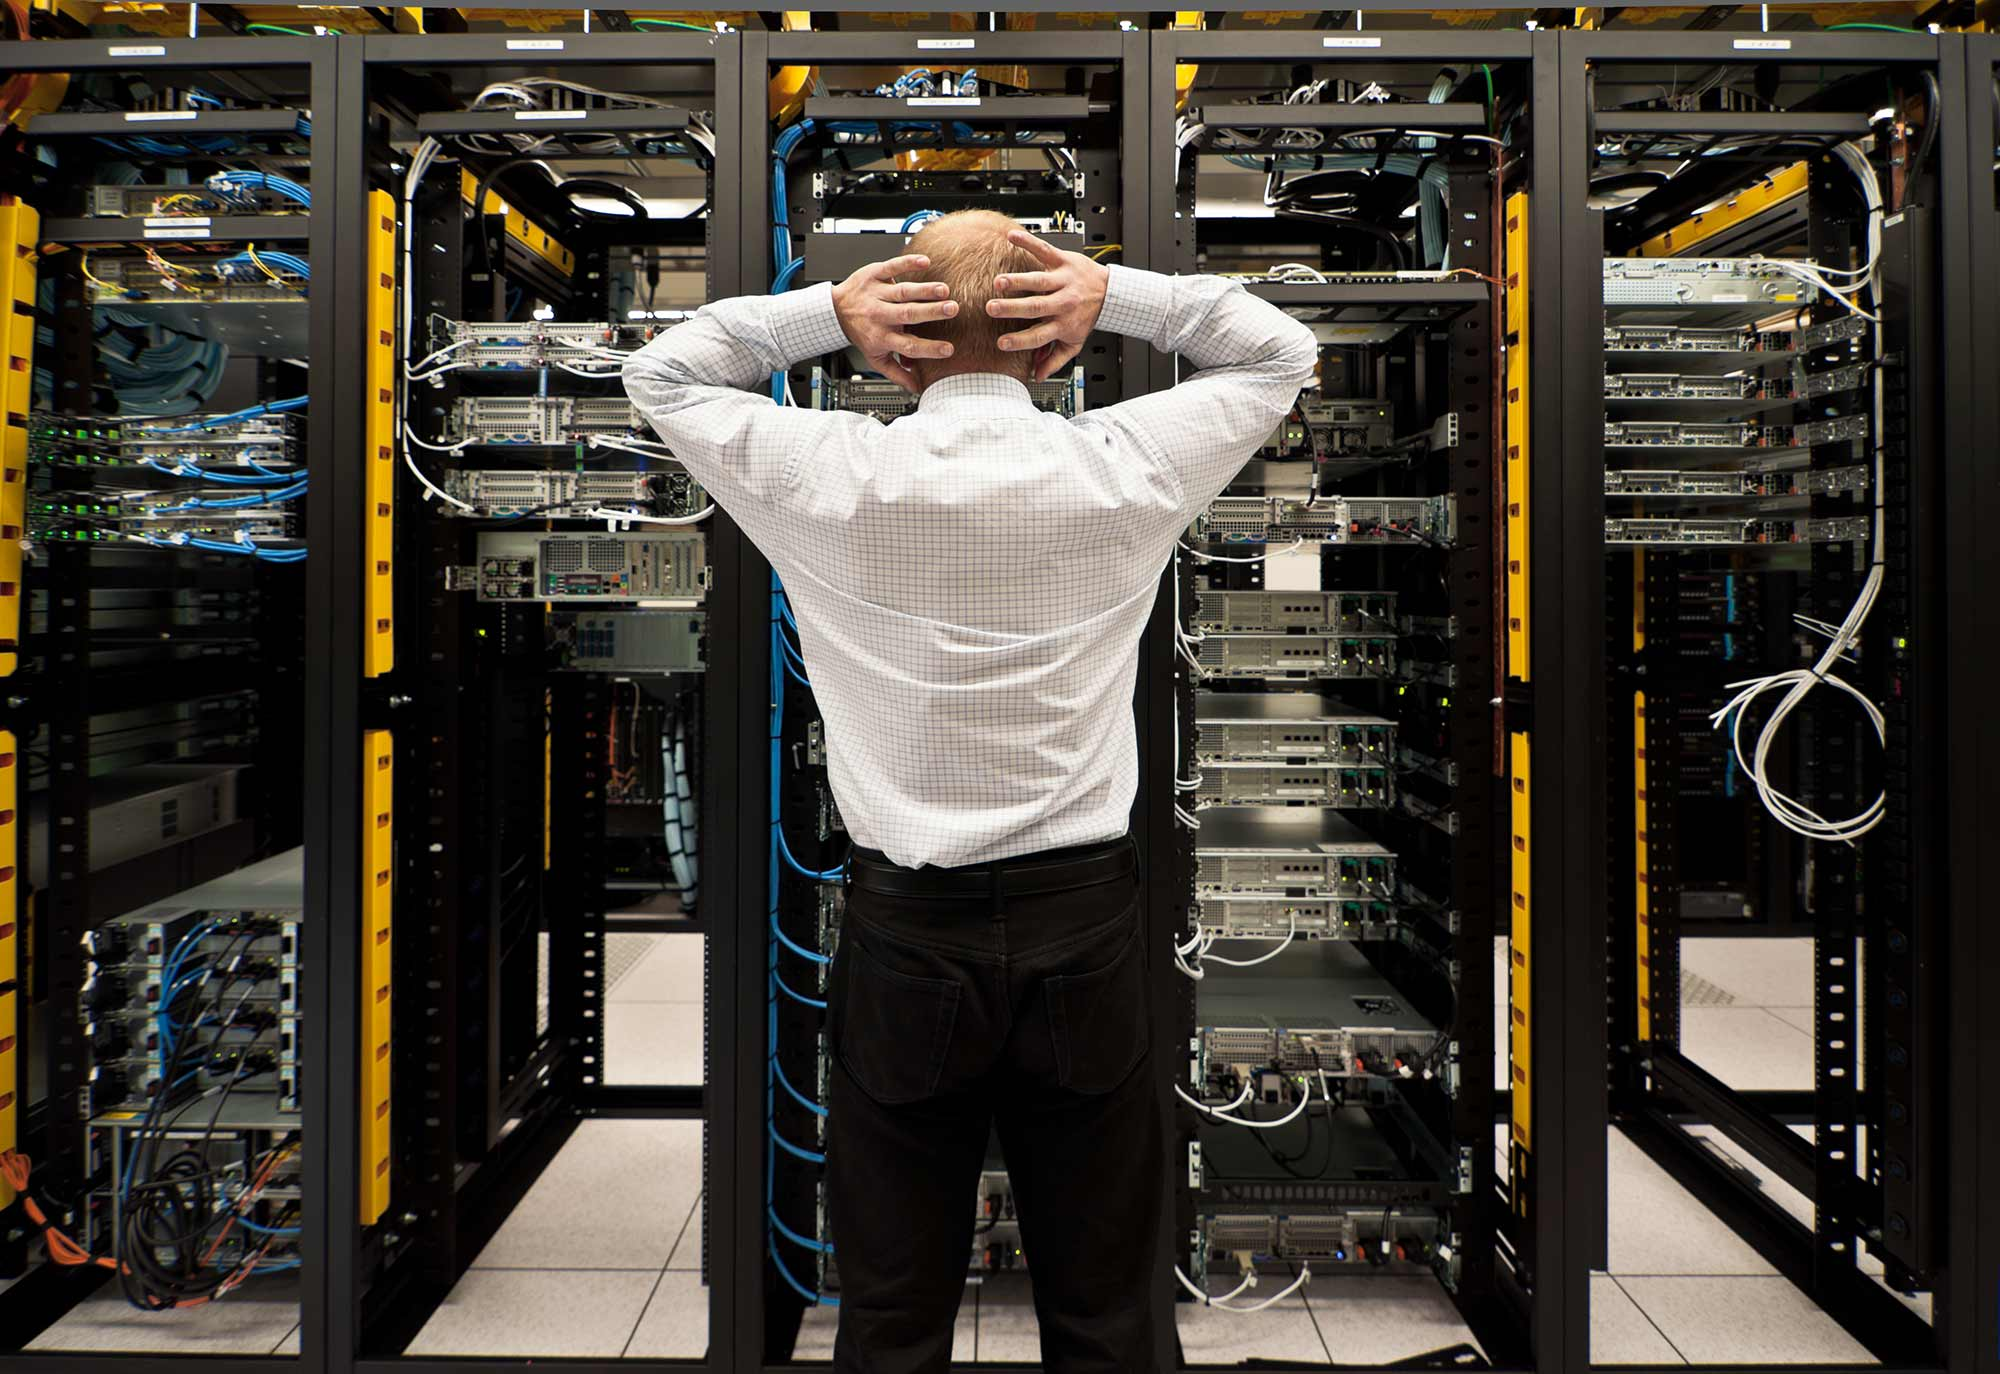 Data Centre Structured Cabling Companies Wiring Can Centres